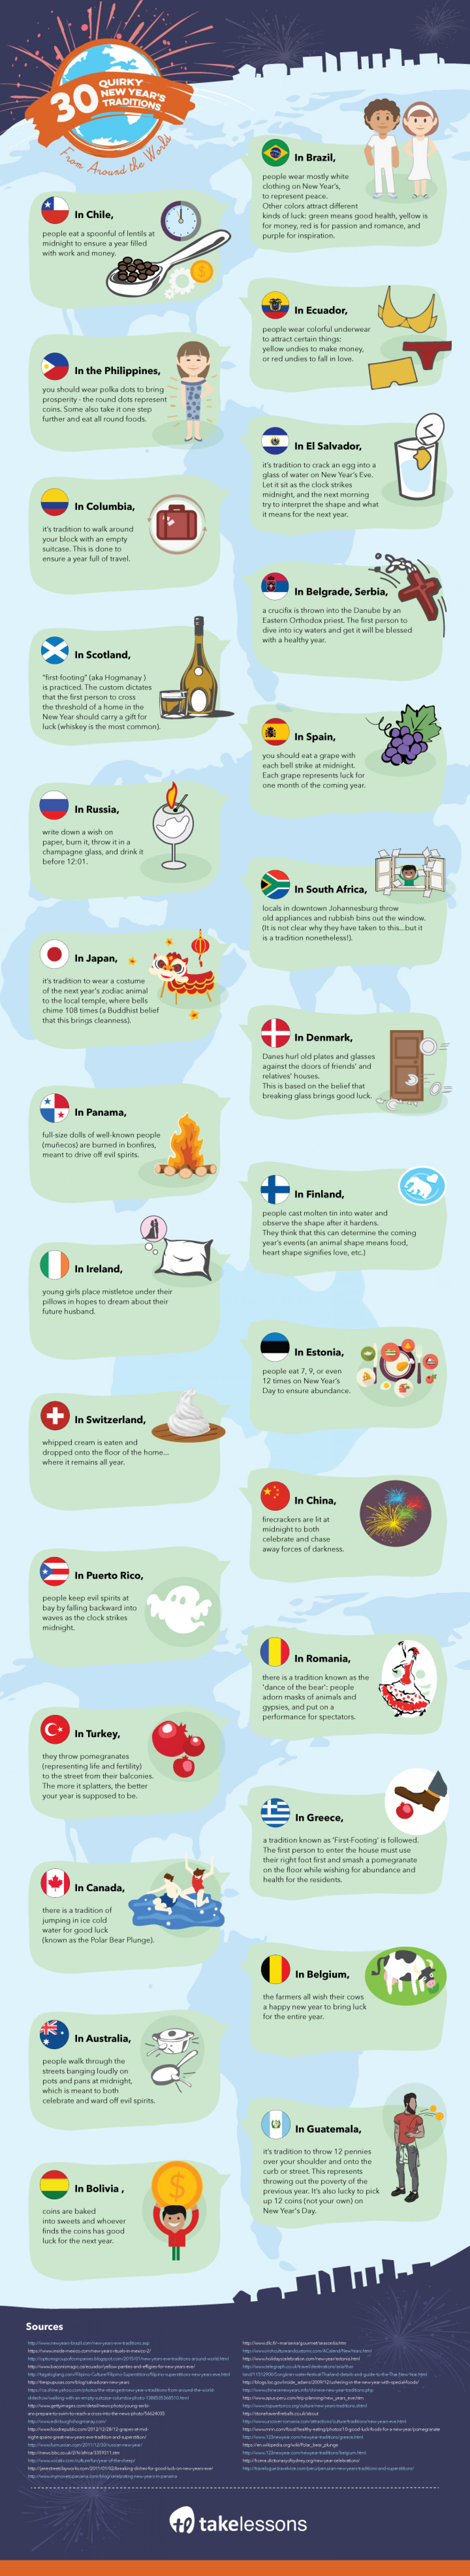 30 Bizarre New Year's Eve Traditions Around the World Infographic